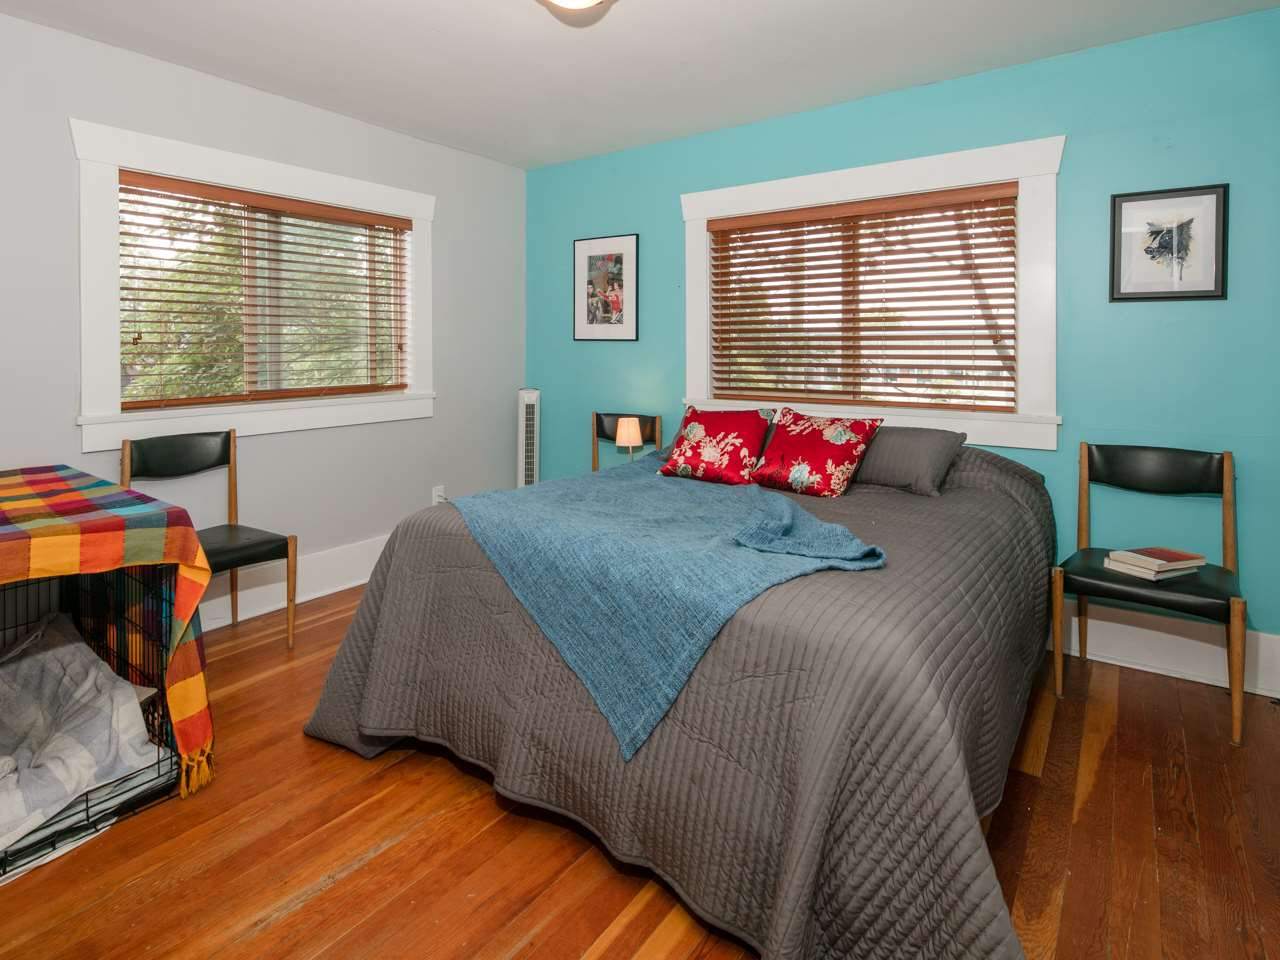 Photo 15: 3821 SOPHIA Street in Vancouver: Main House for sale (Vancouver East)  : MLS® # R2079723